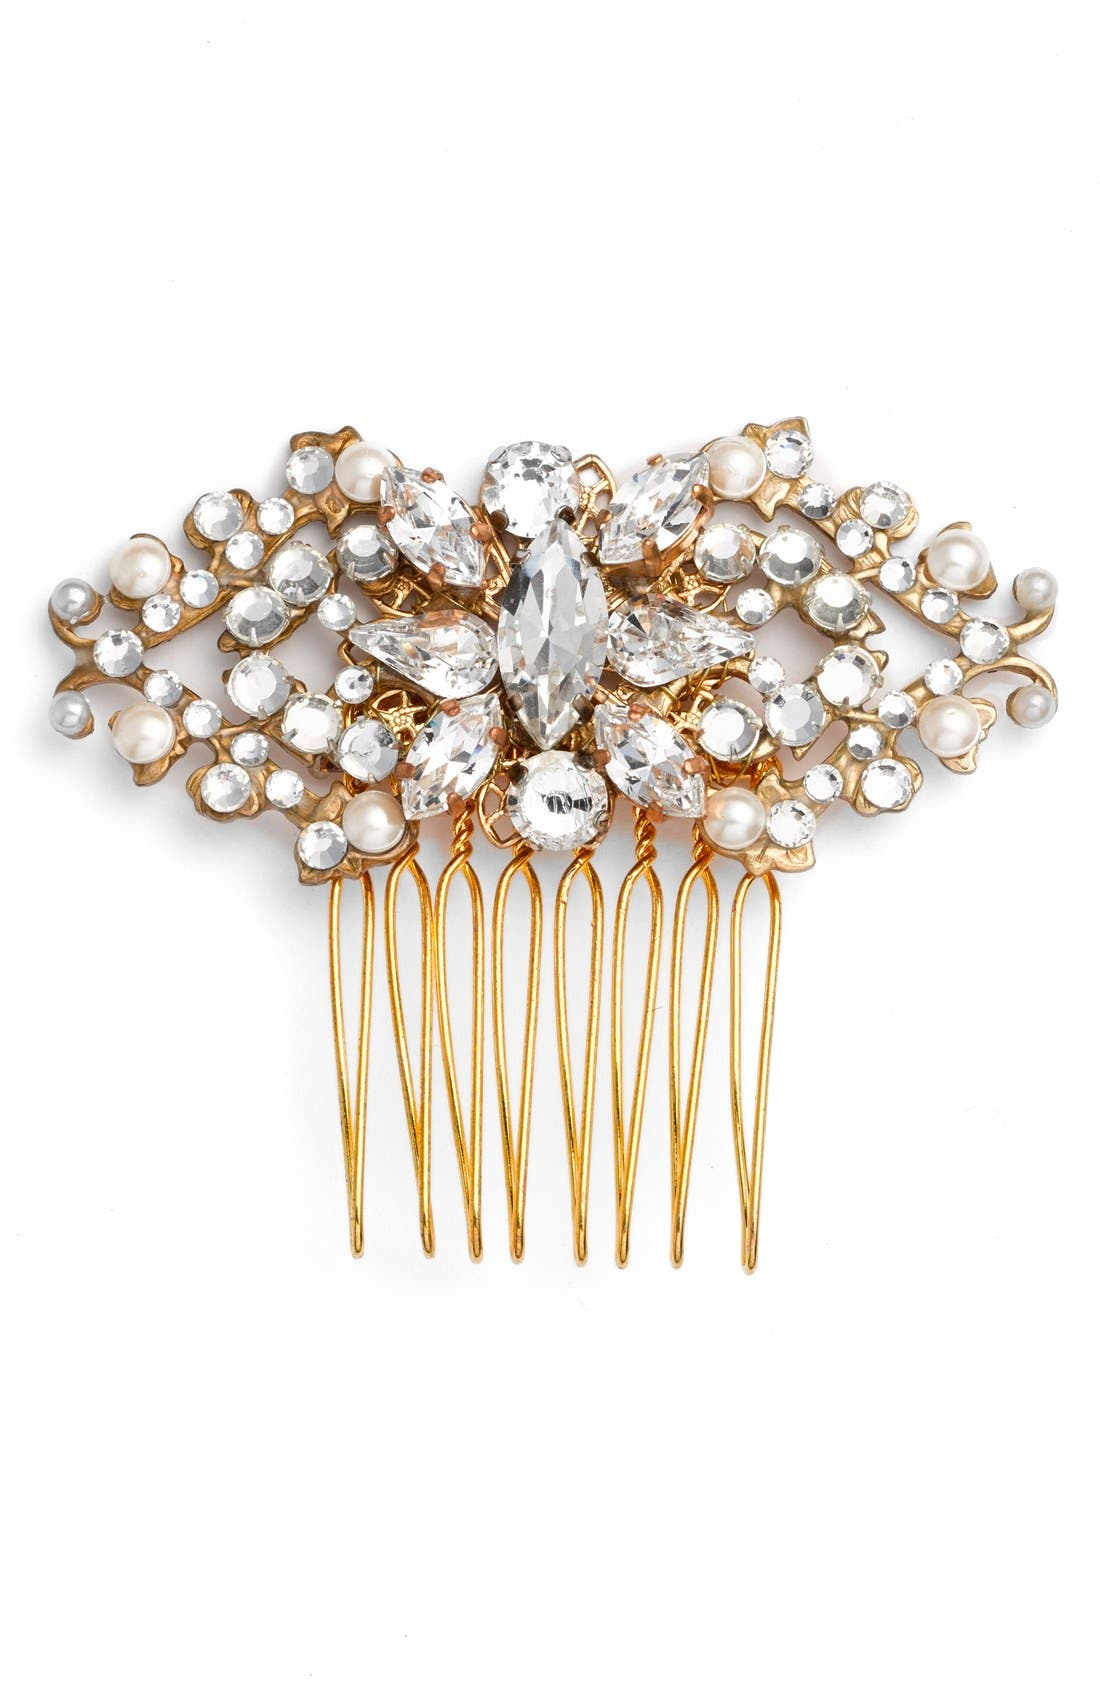 Alternate Image 1 Selected - Halo & Co 'Edith' Crystal Hair Comb